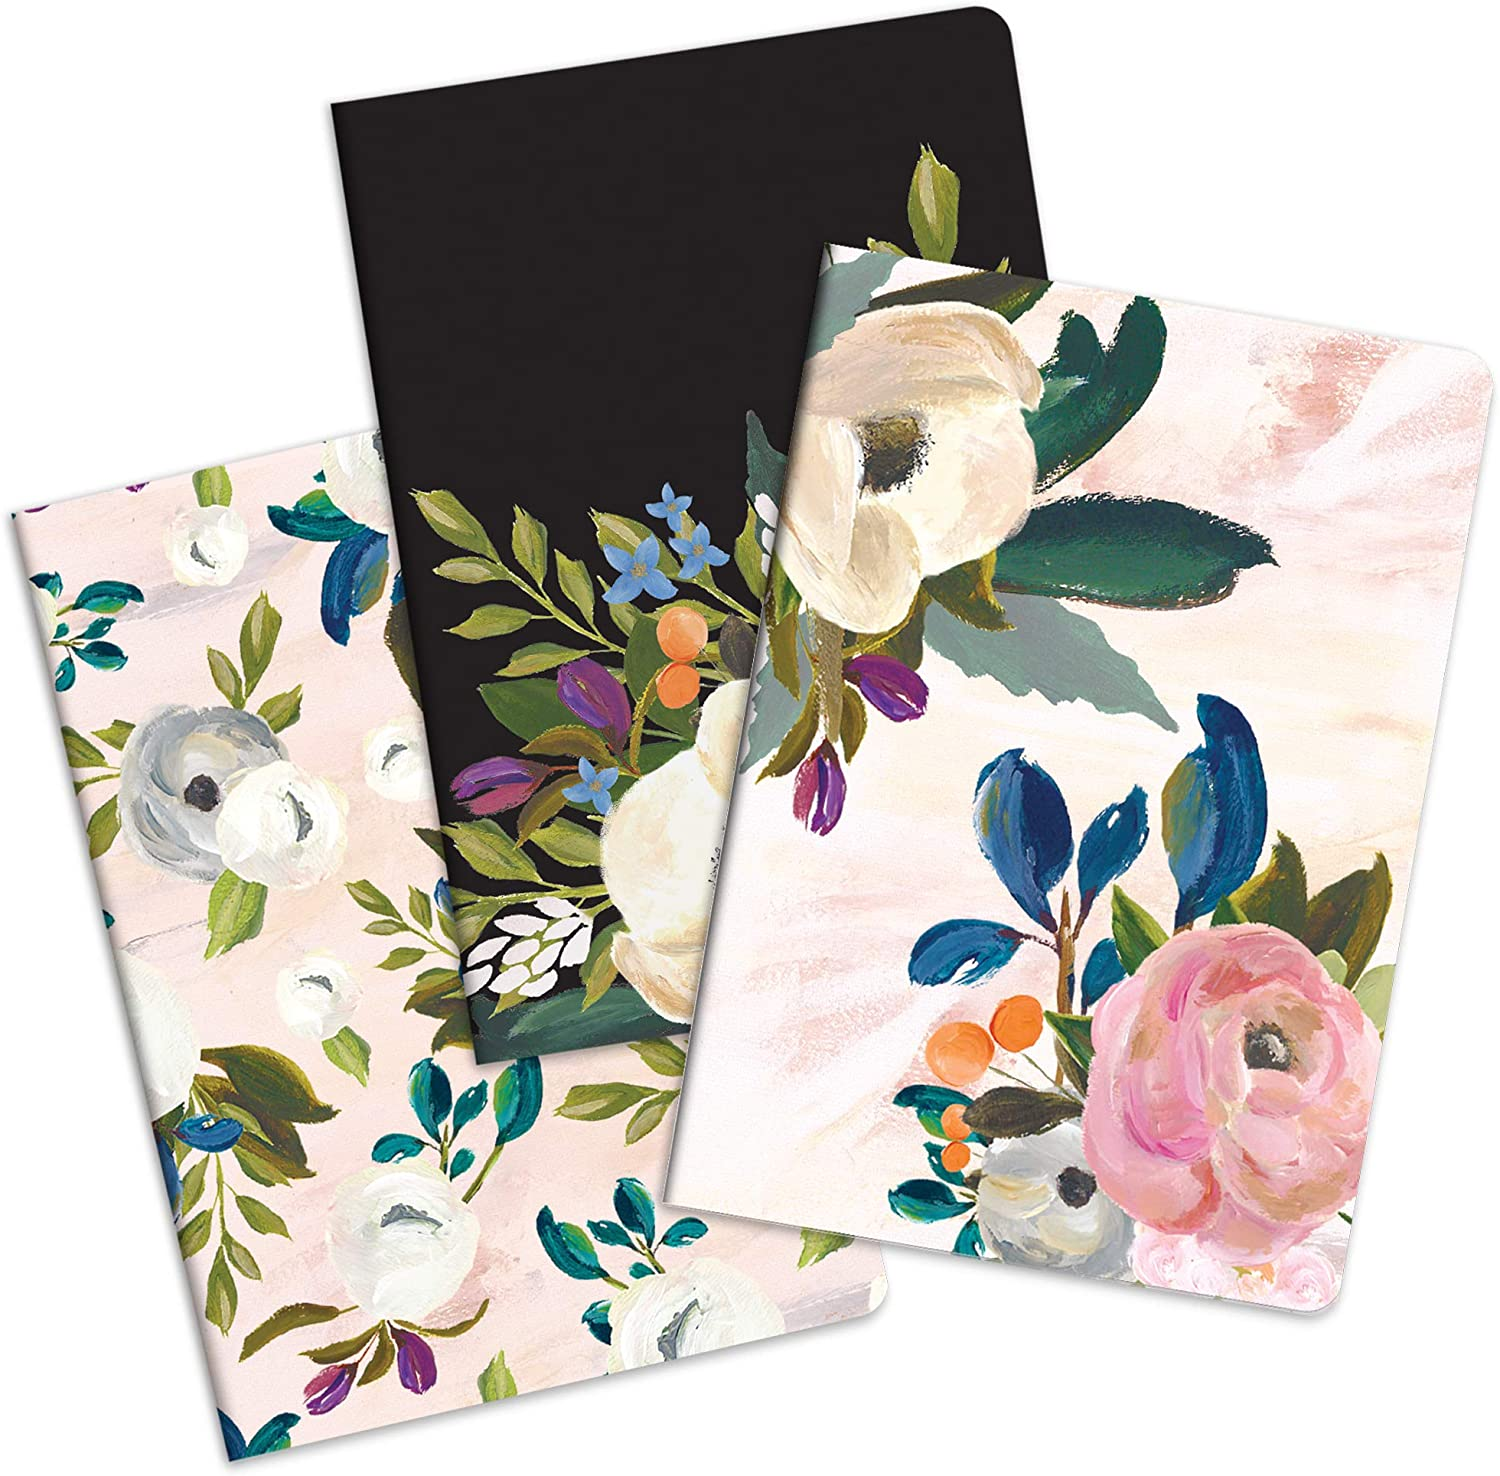 Notebook Trio Max 76% OFF Ranking integrated 1st place by Studio Oh - Set Bella 5.75